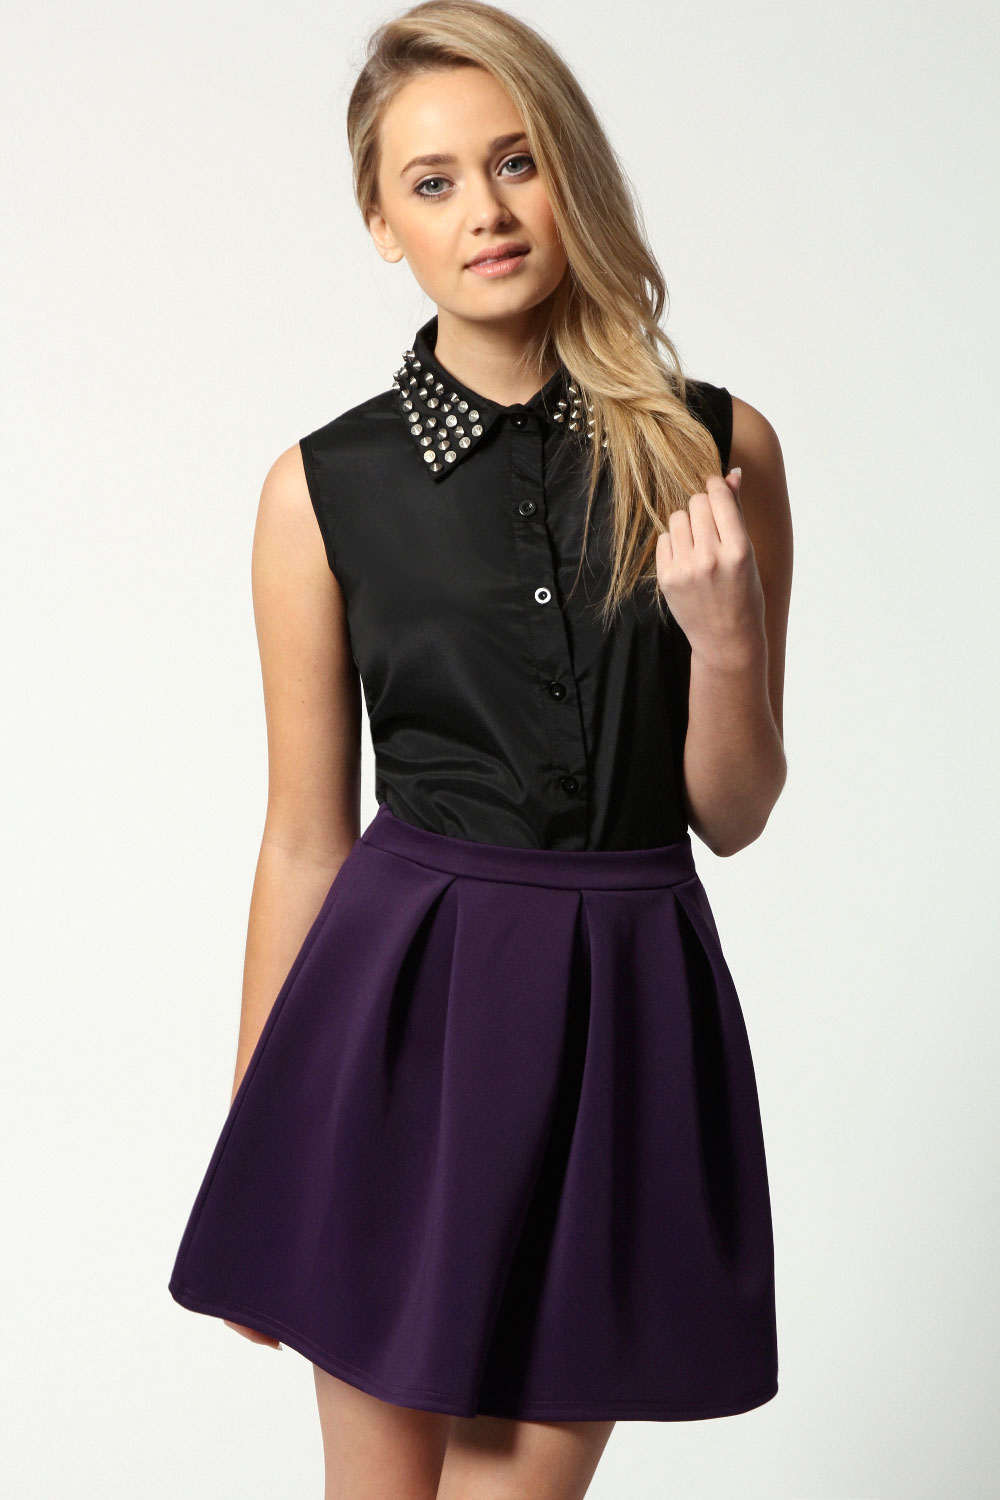 Boohoo-Kate-Box-Pleat-Skater-Hip-Length-Skirt thumbnail 8